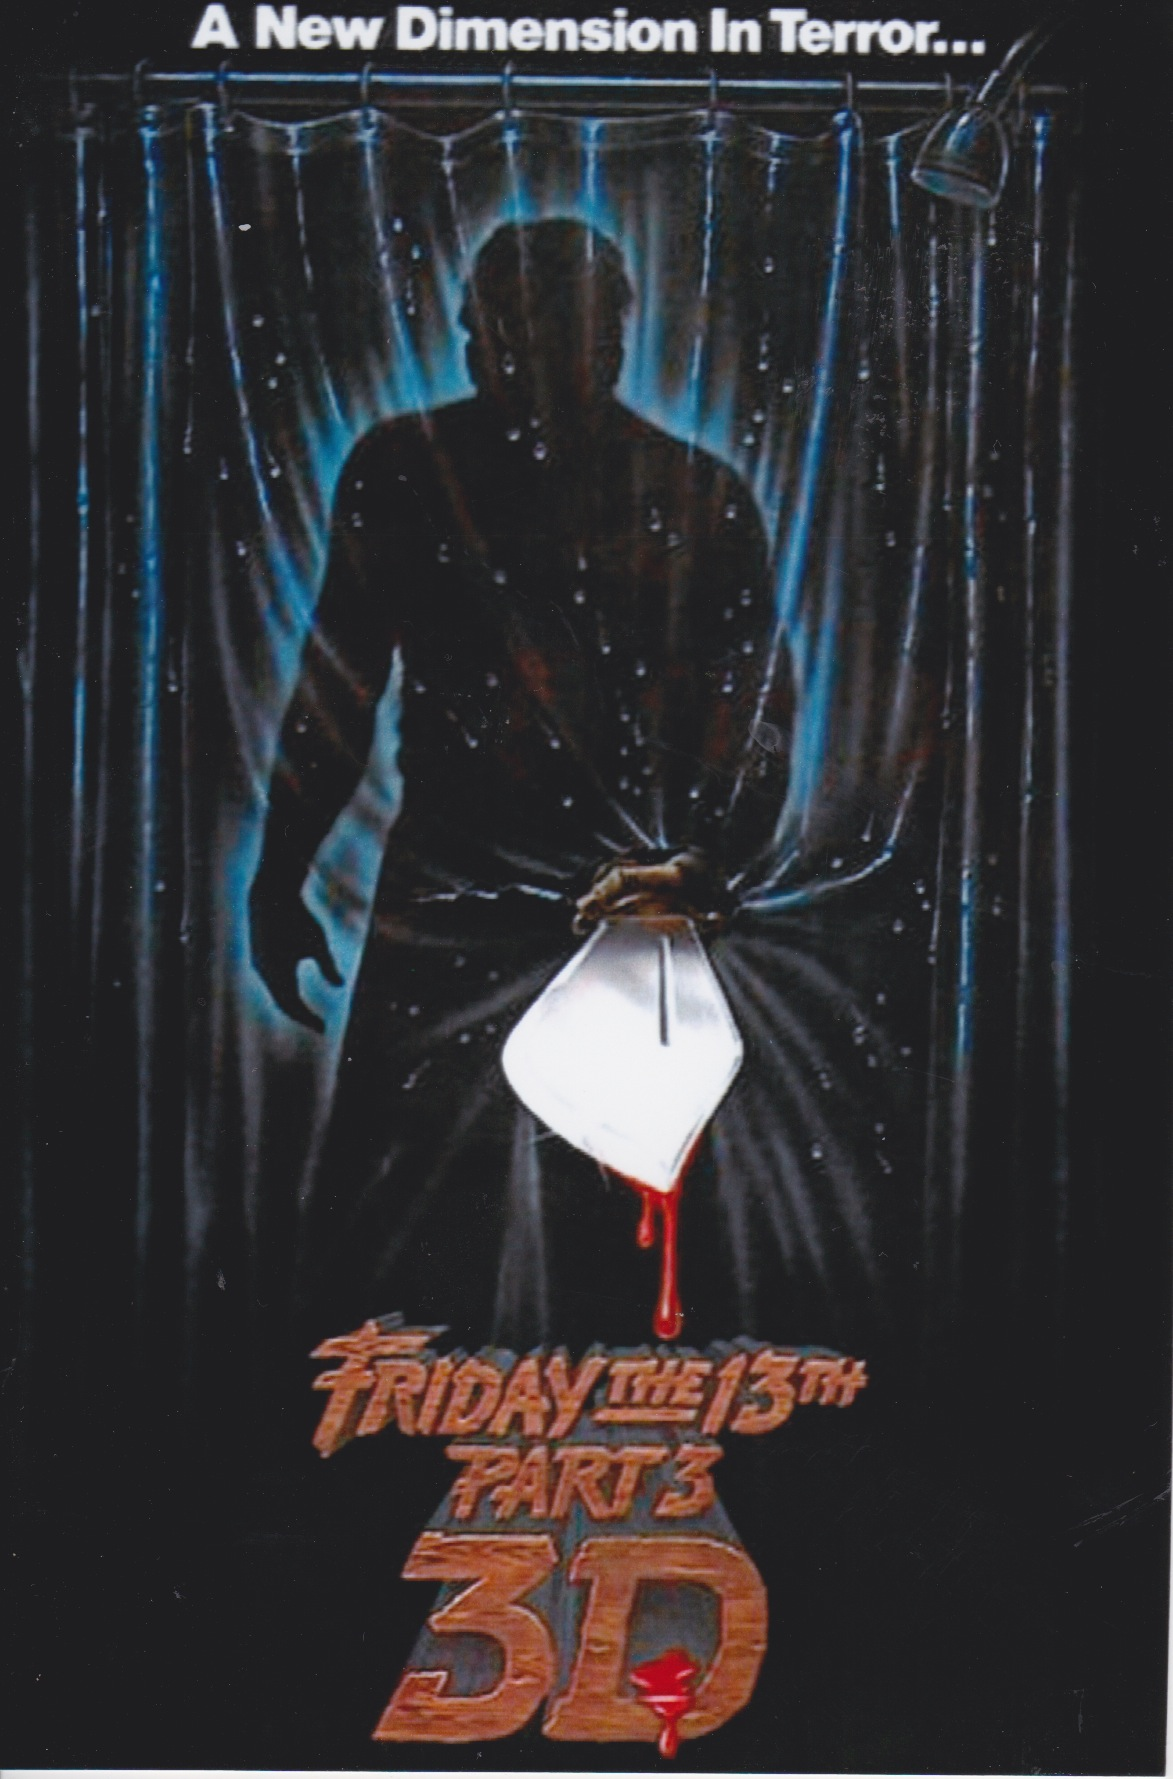 Friday the 13th, Part 3 Poster